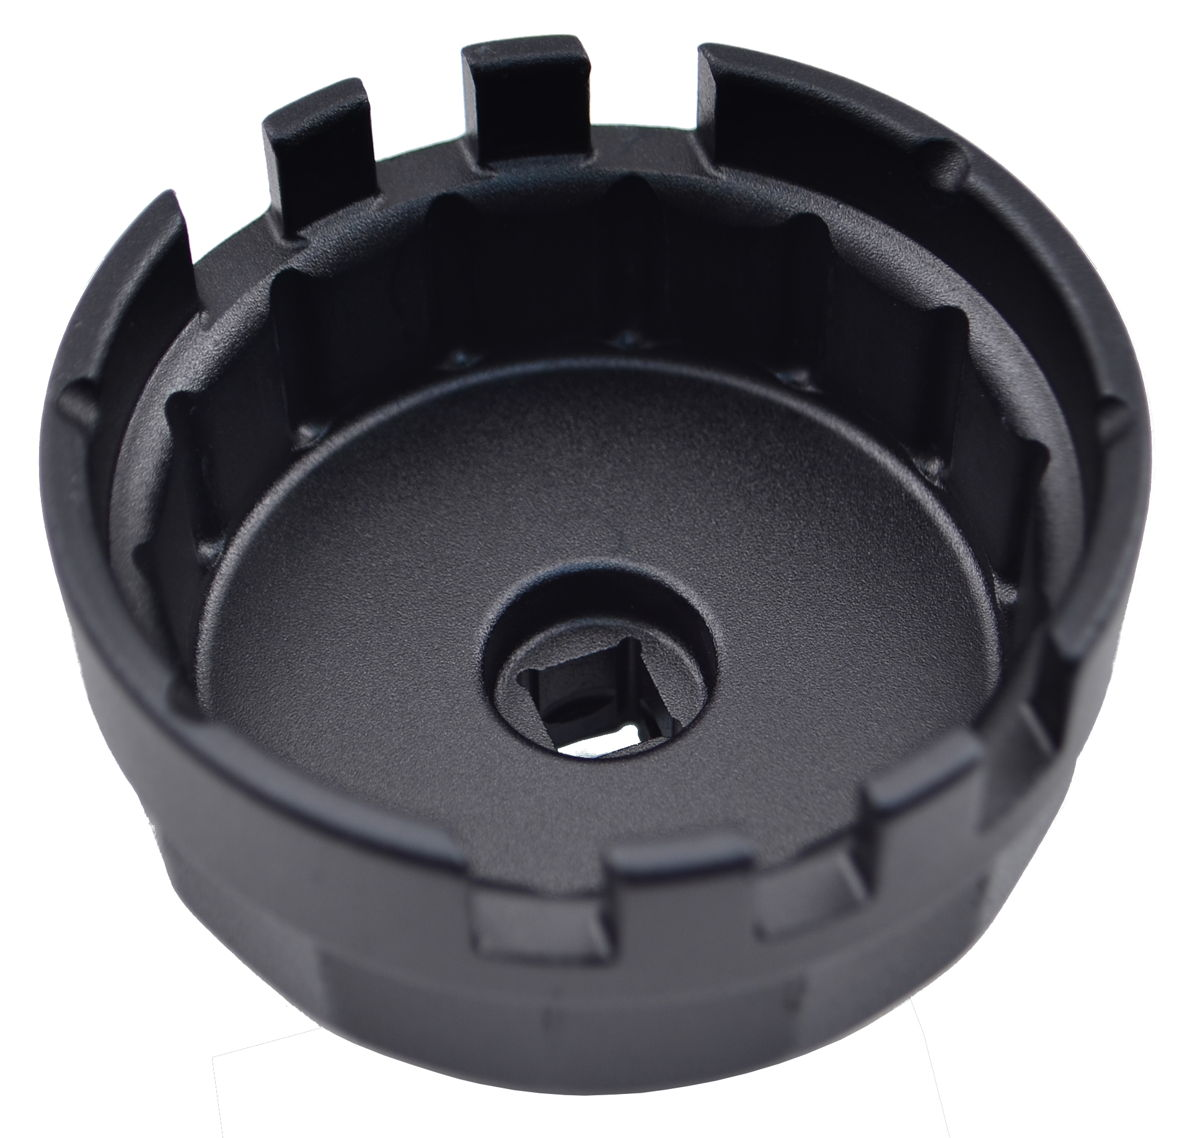 Prius oil filter wrench motivx tools your toyota prius oil change just got a whole lot easier solutioingenieria Image collections